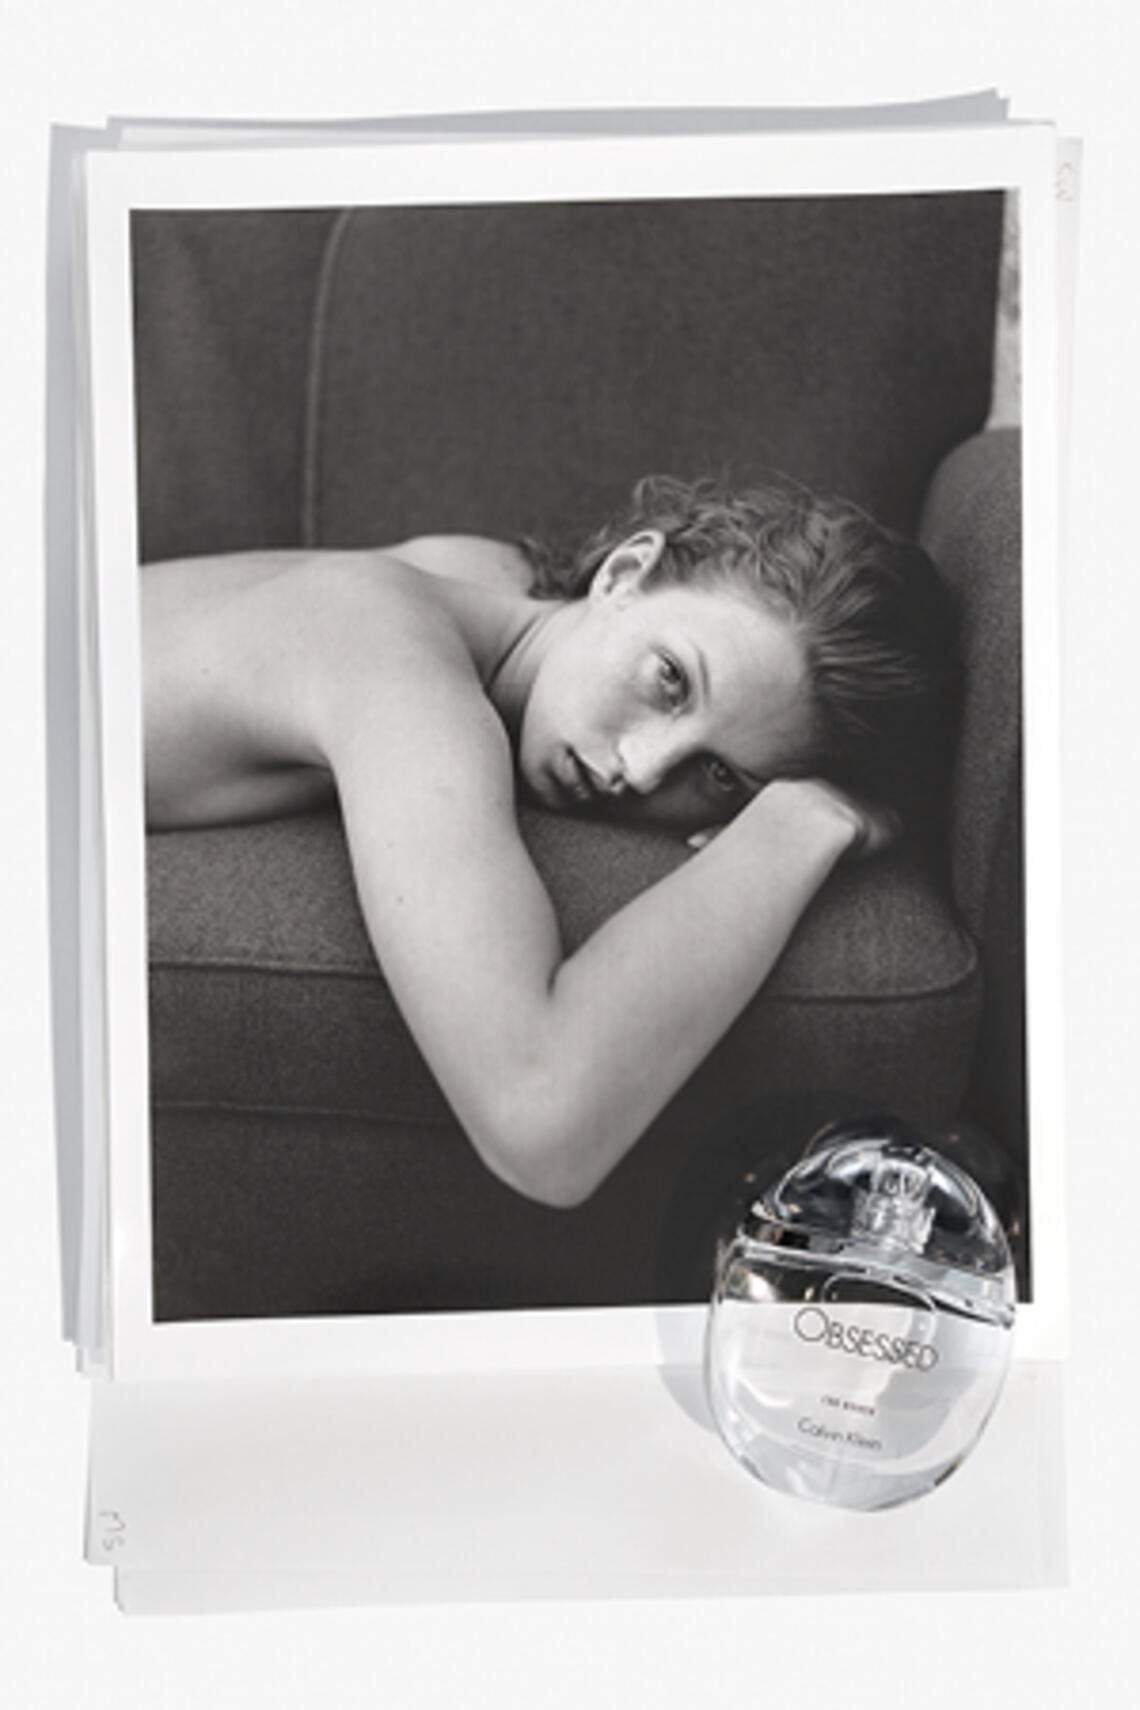 Kate Moss Calvin Klein Obsessed